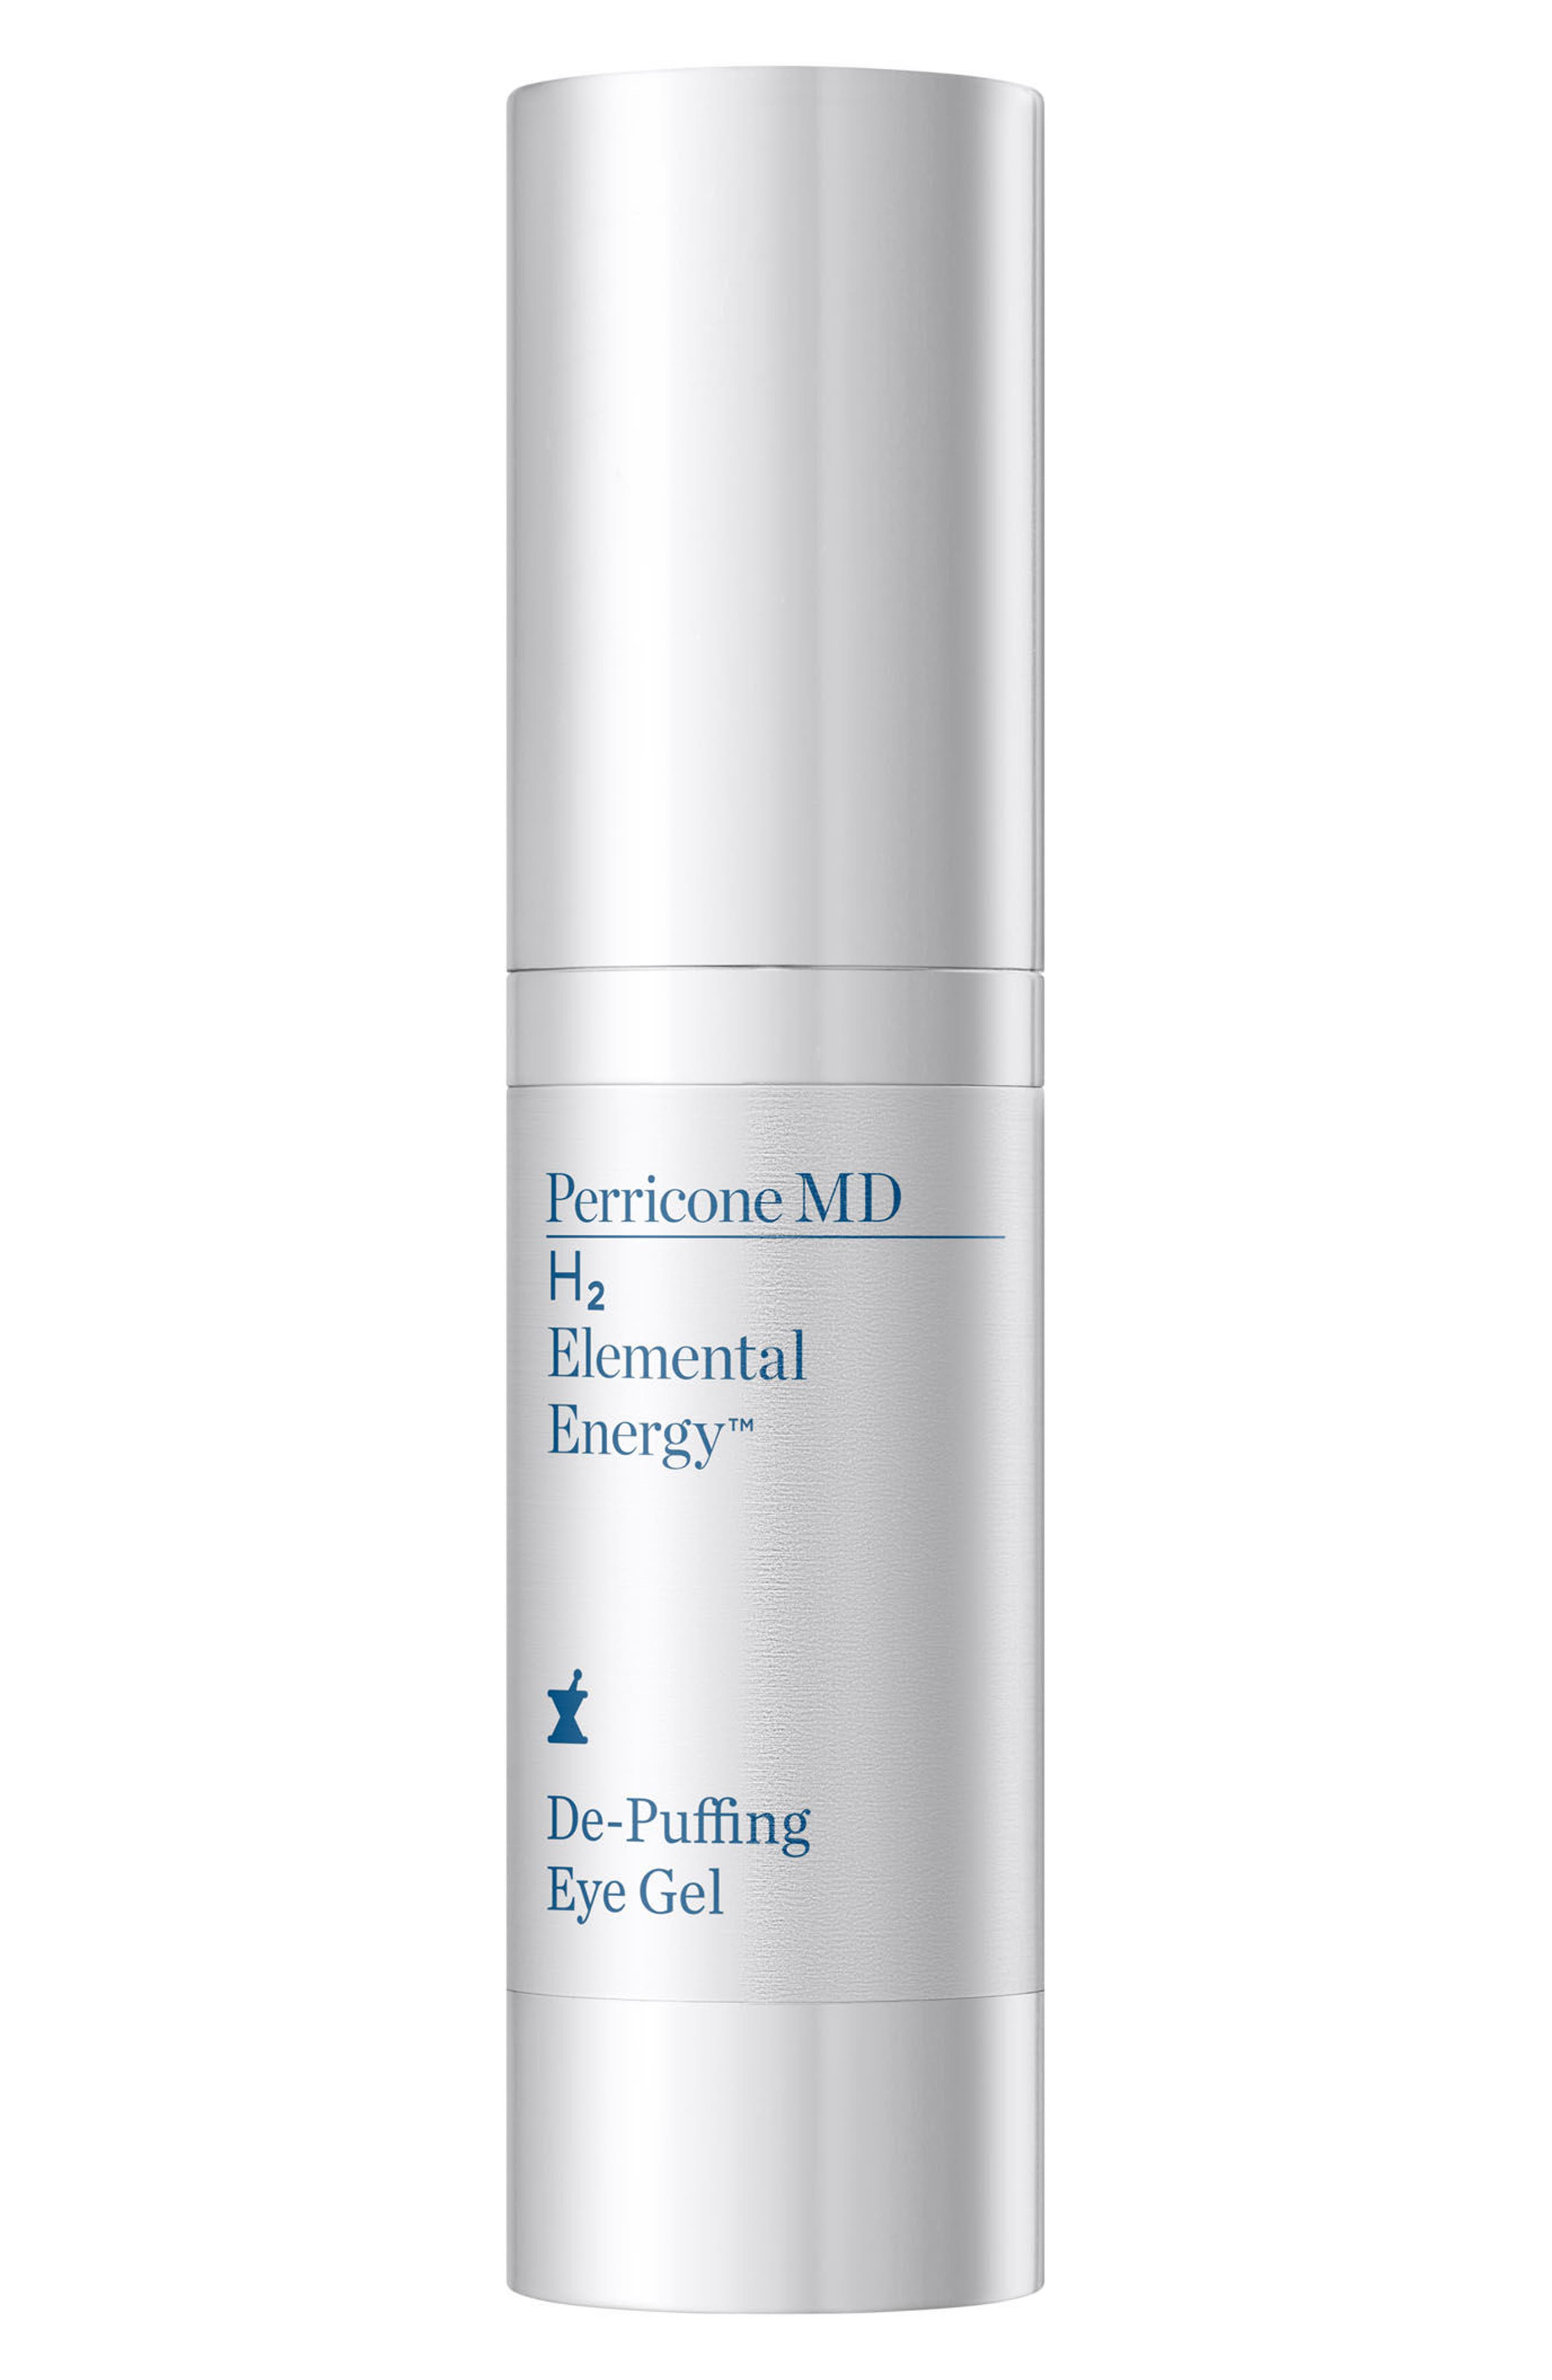 Perricone MD H2 Elemental De-Puffing Eye Gel